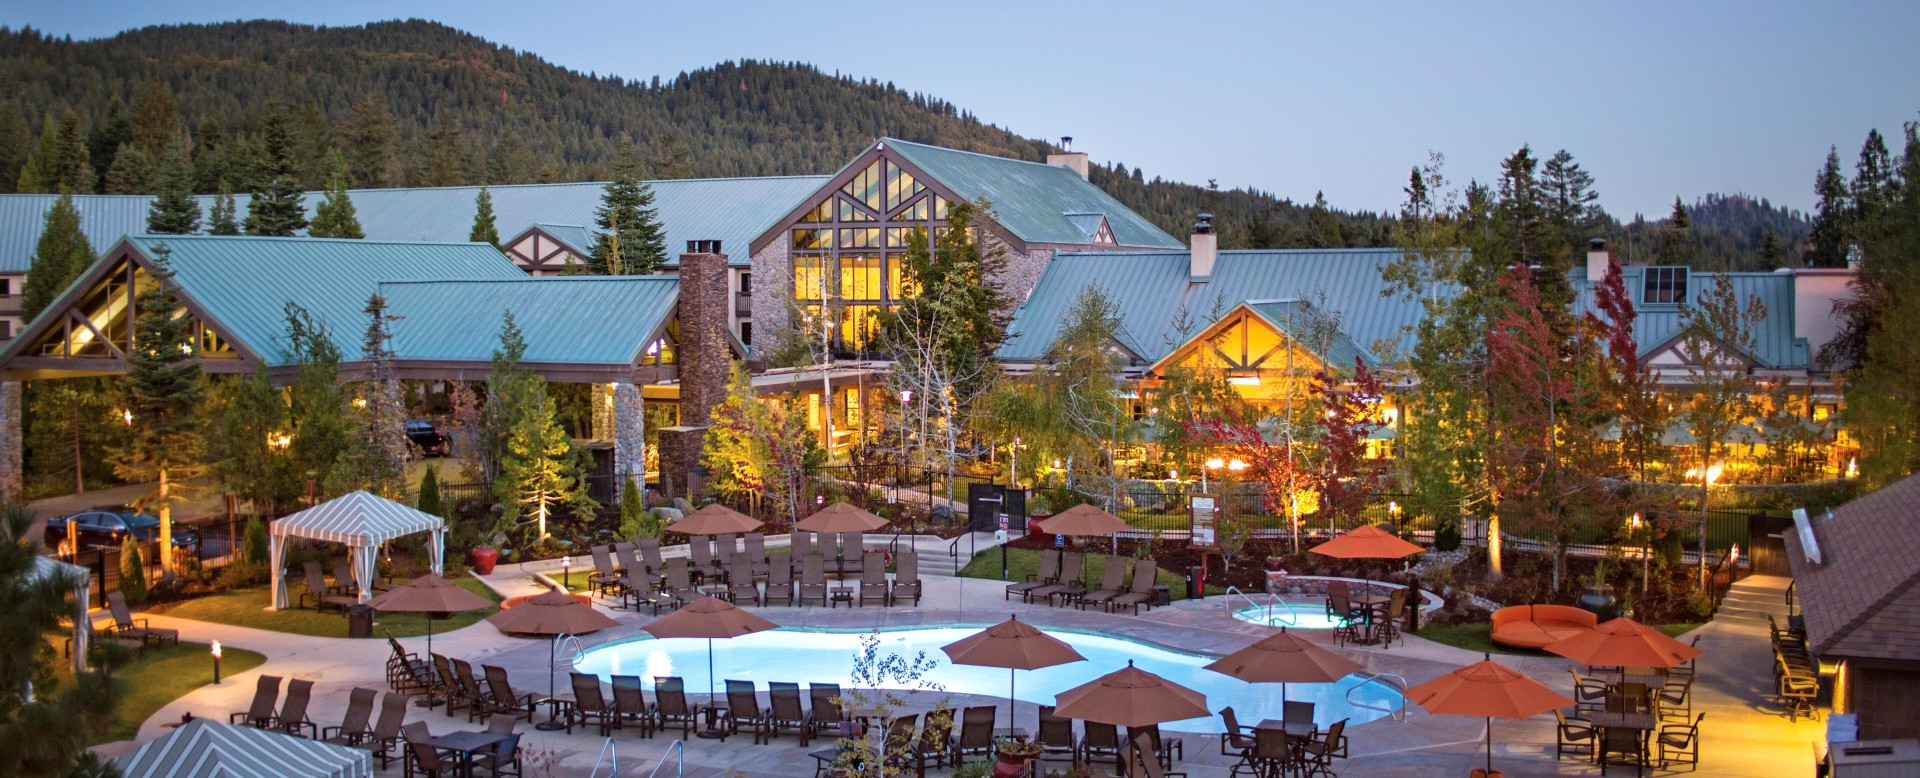 Tenaya Lodge at Yosemite - exterior dawn